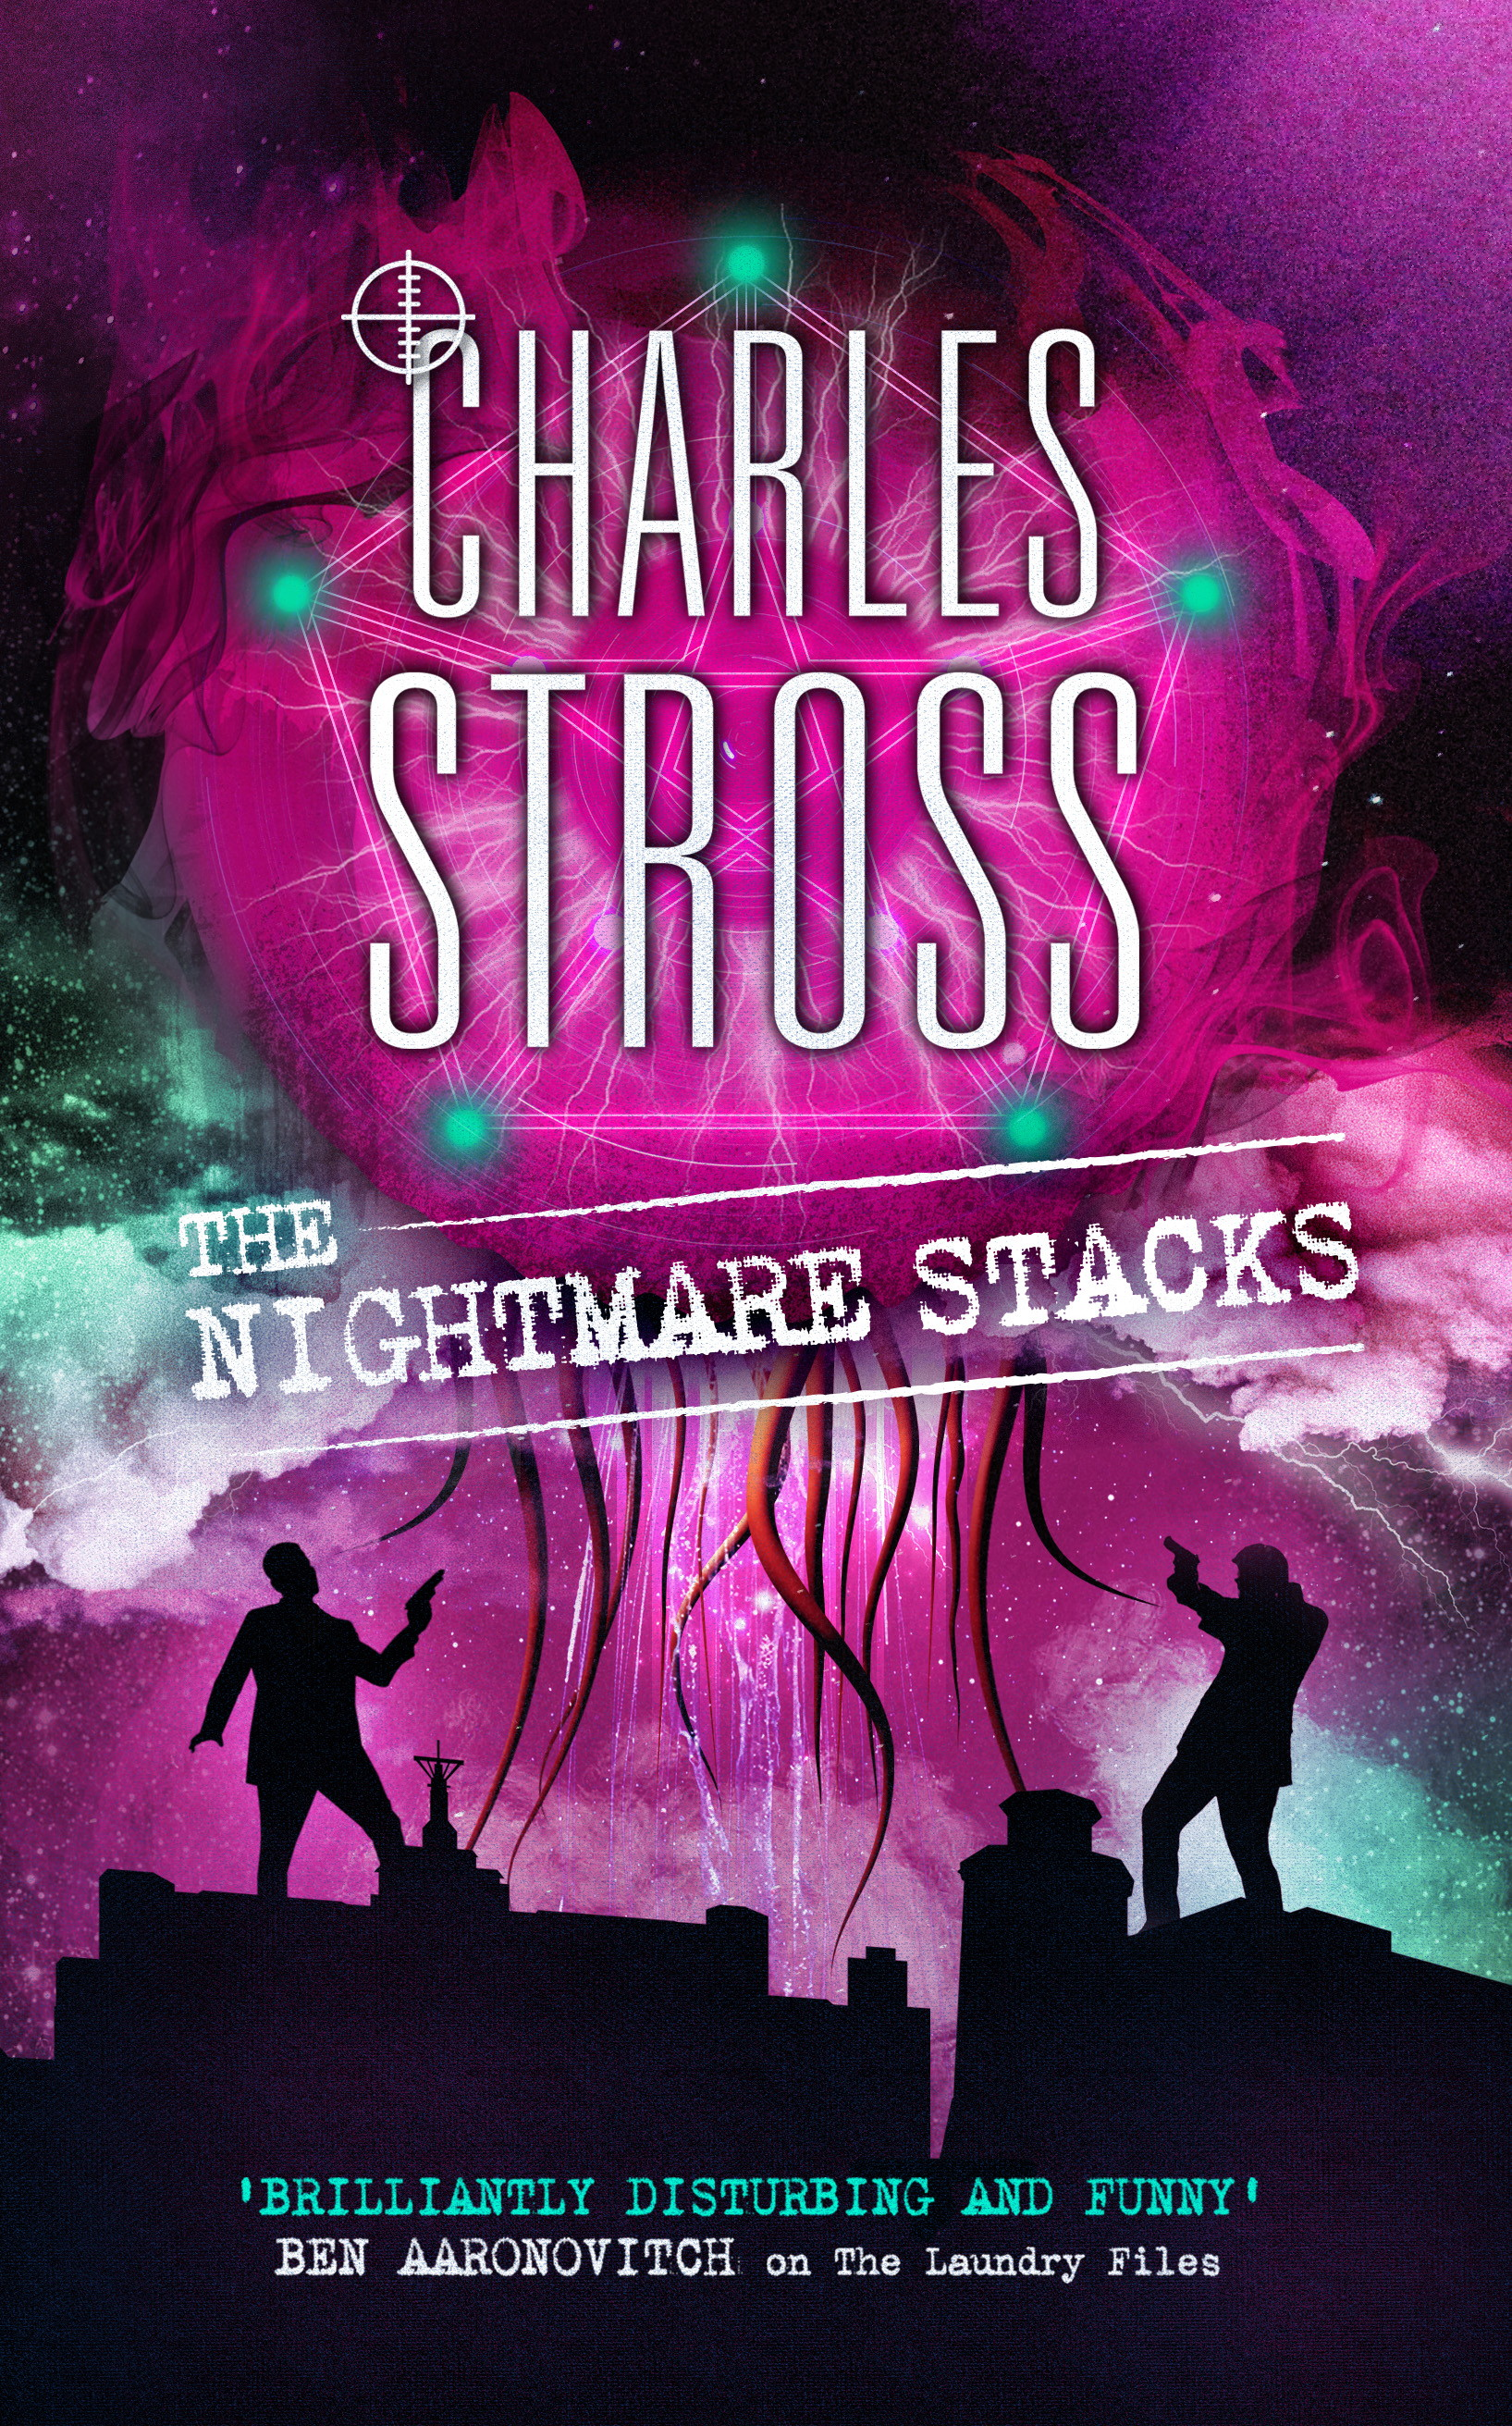 The Nightmare Stacks book cover